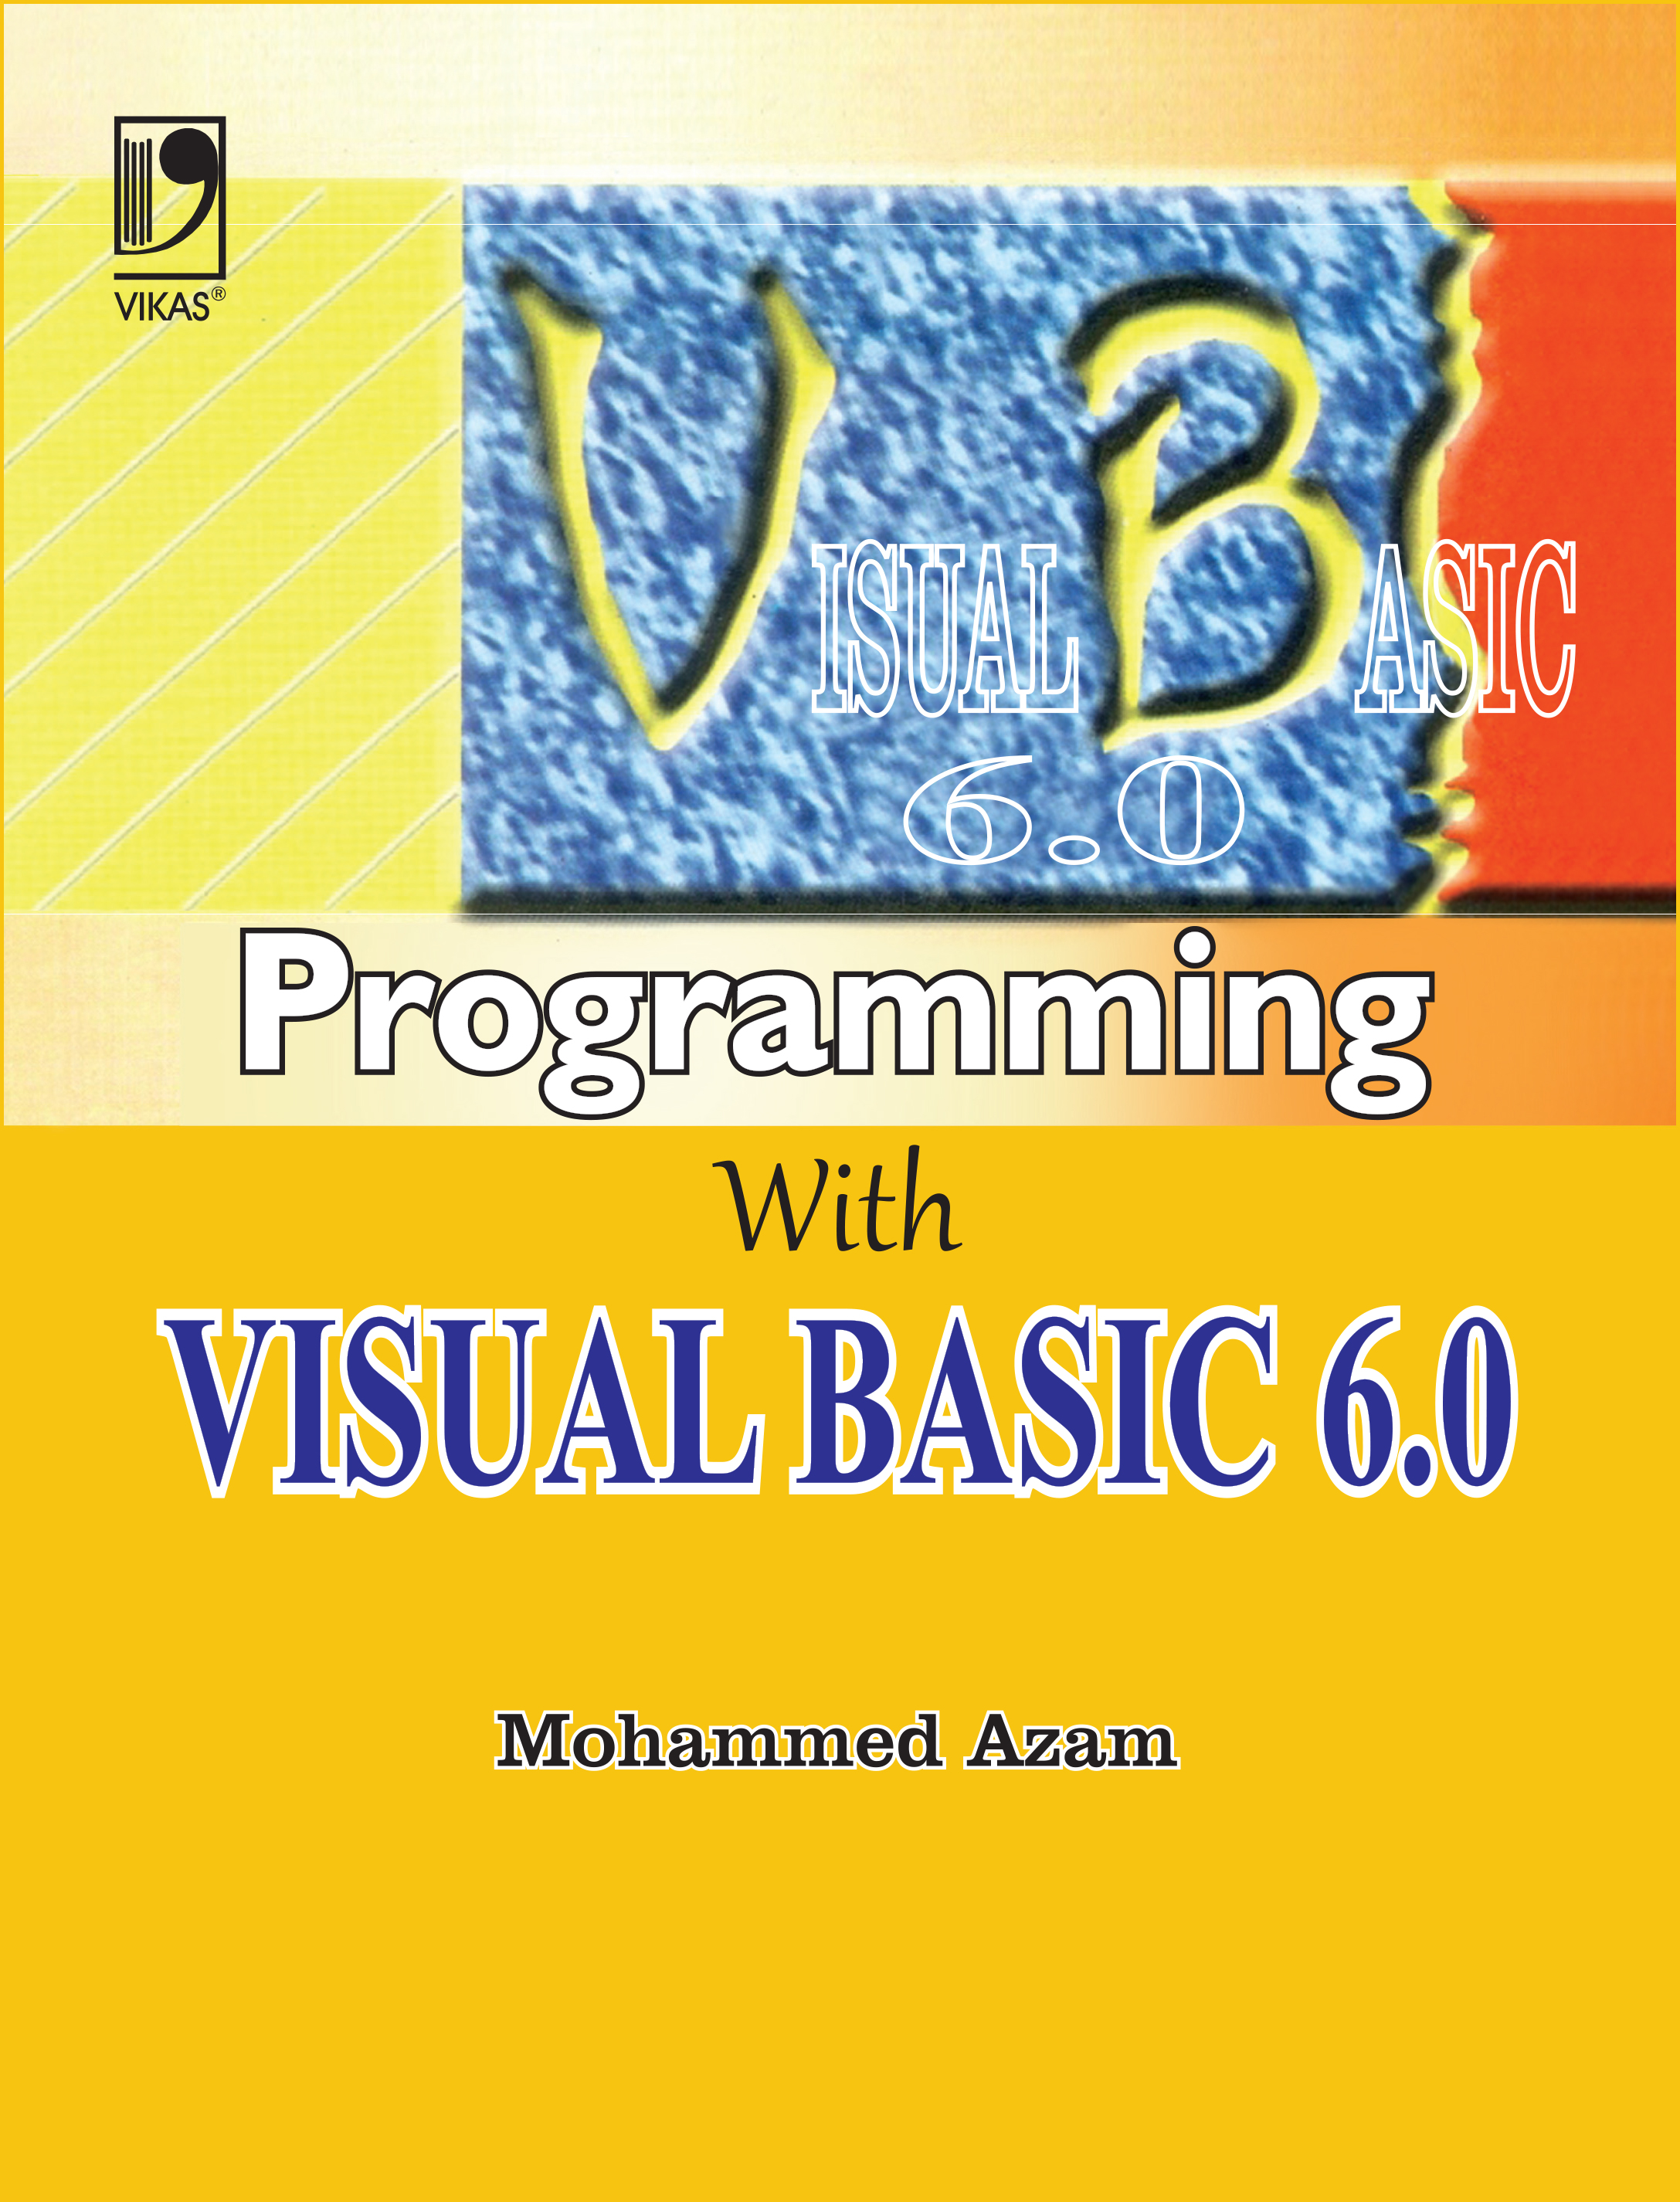 Programming With Visual Basic 6.0 by Mohammed Azam